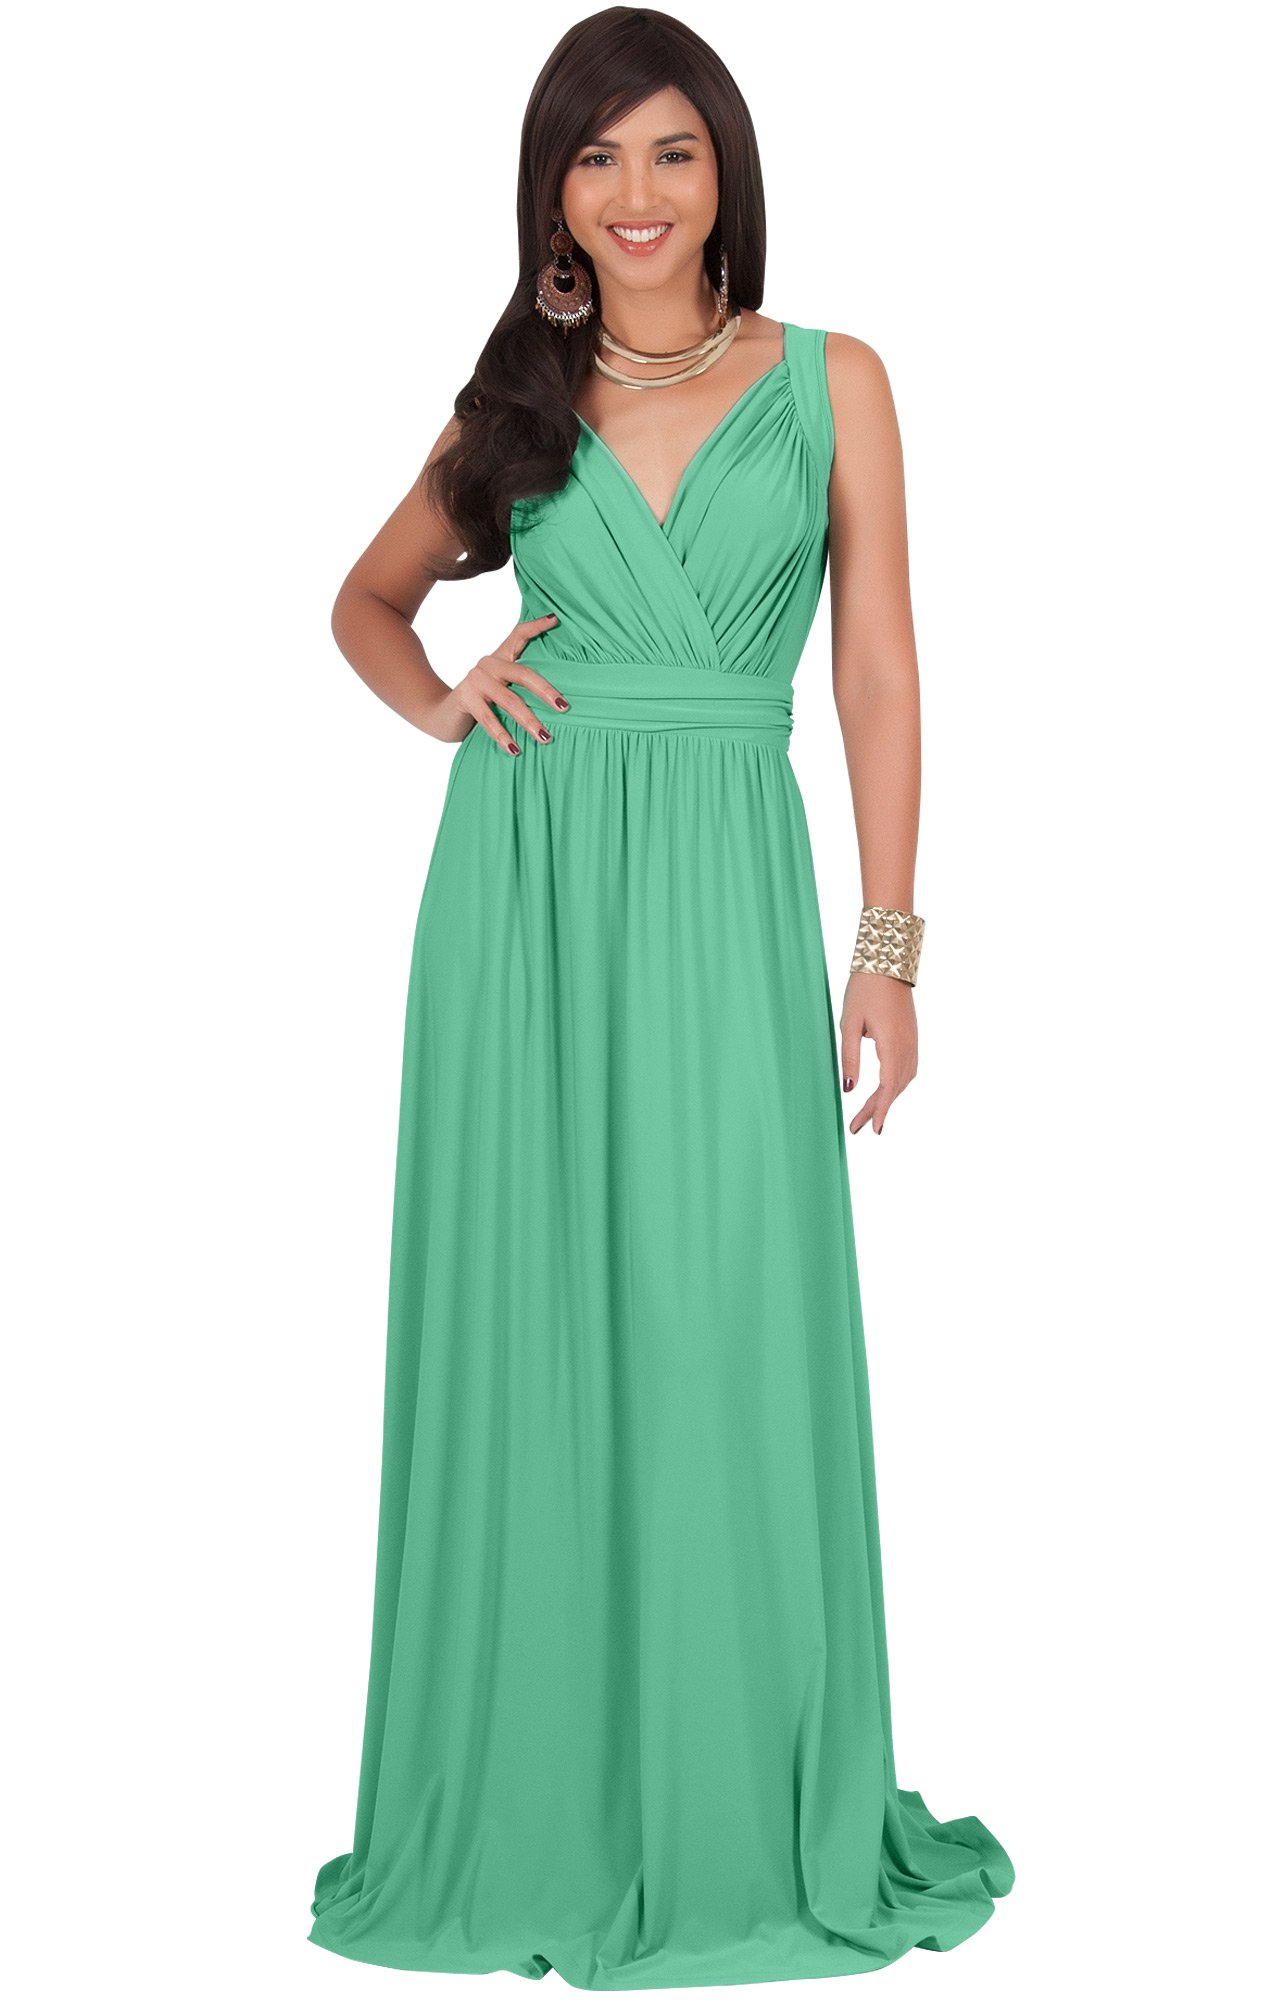 KOH KOH Womens Long Sleeveless Flowy Bridesmaids Cocktail Party Evening  Formal Sexy Summer Wedding Guest Ball Prom Gown Gowns Maxi Dress Dresses f9deb1a4e